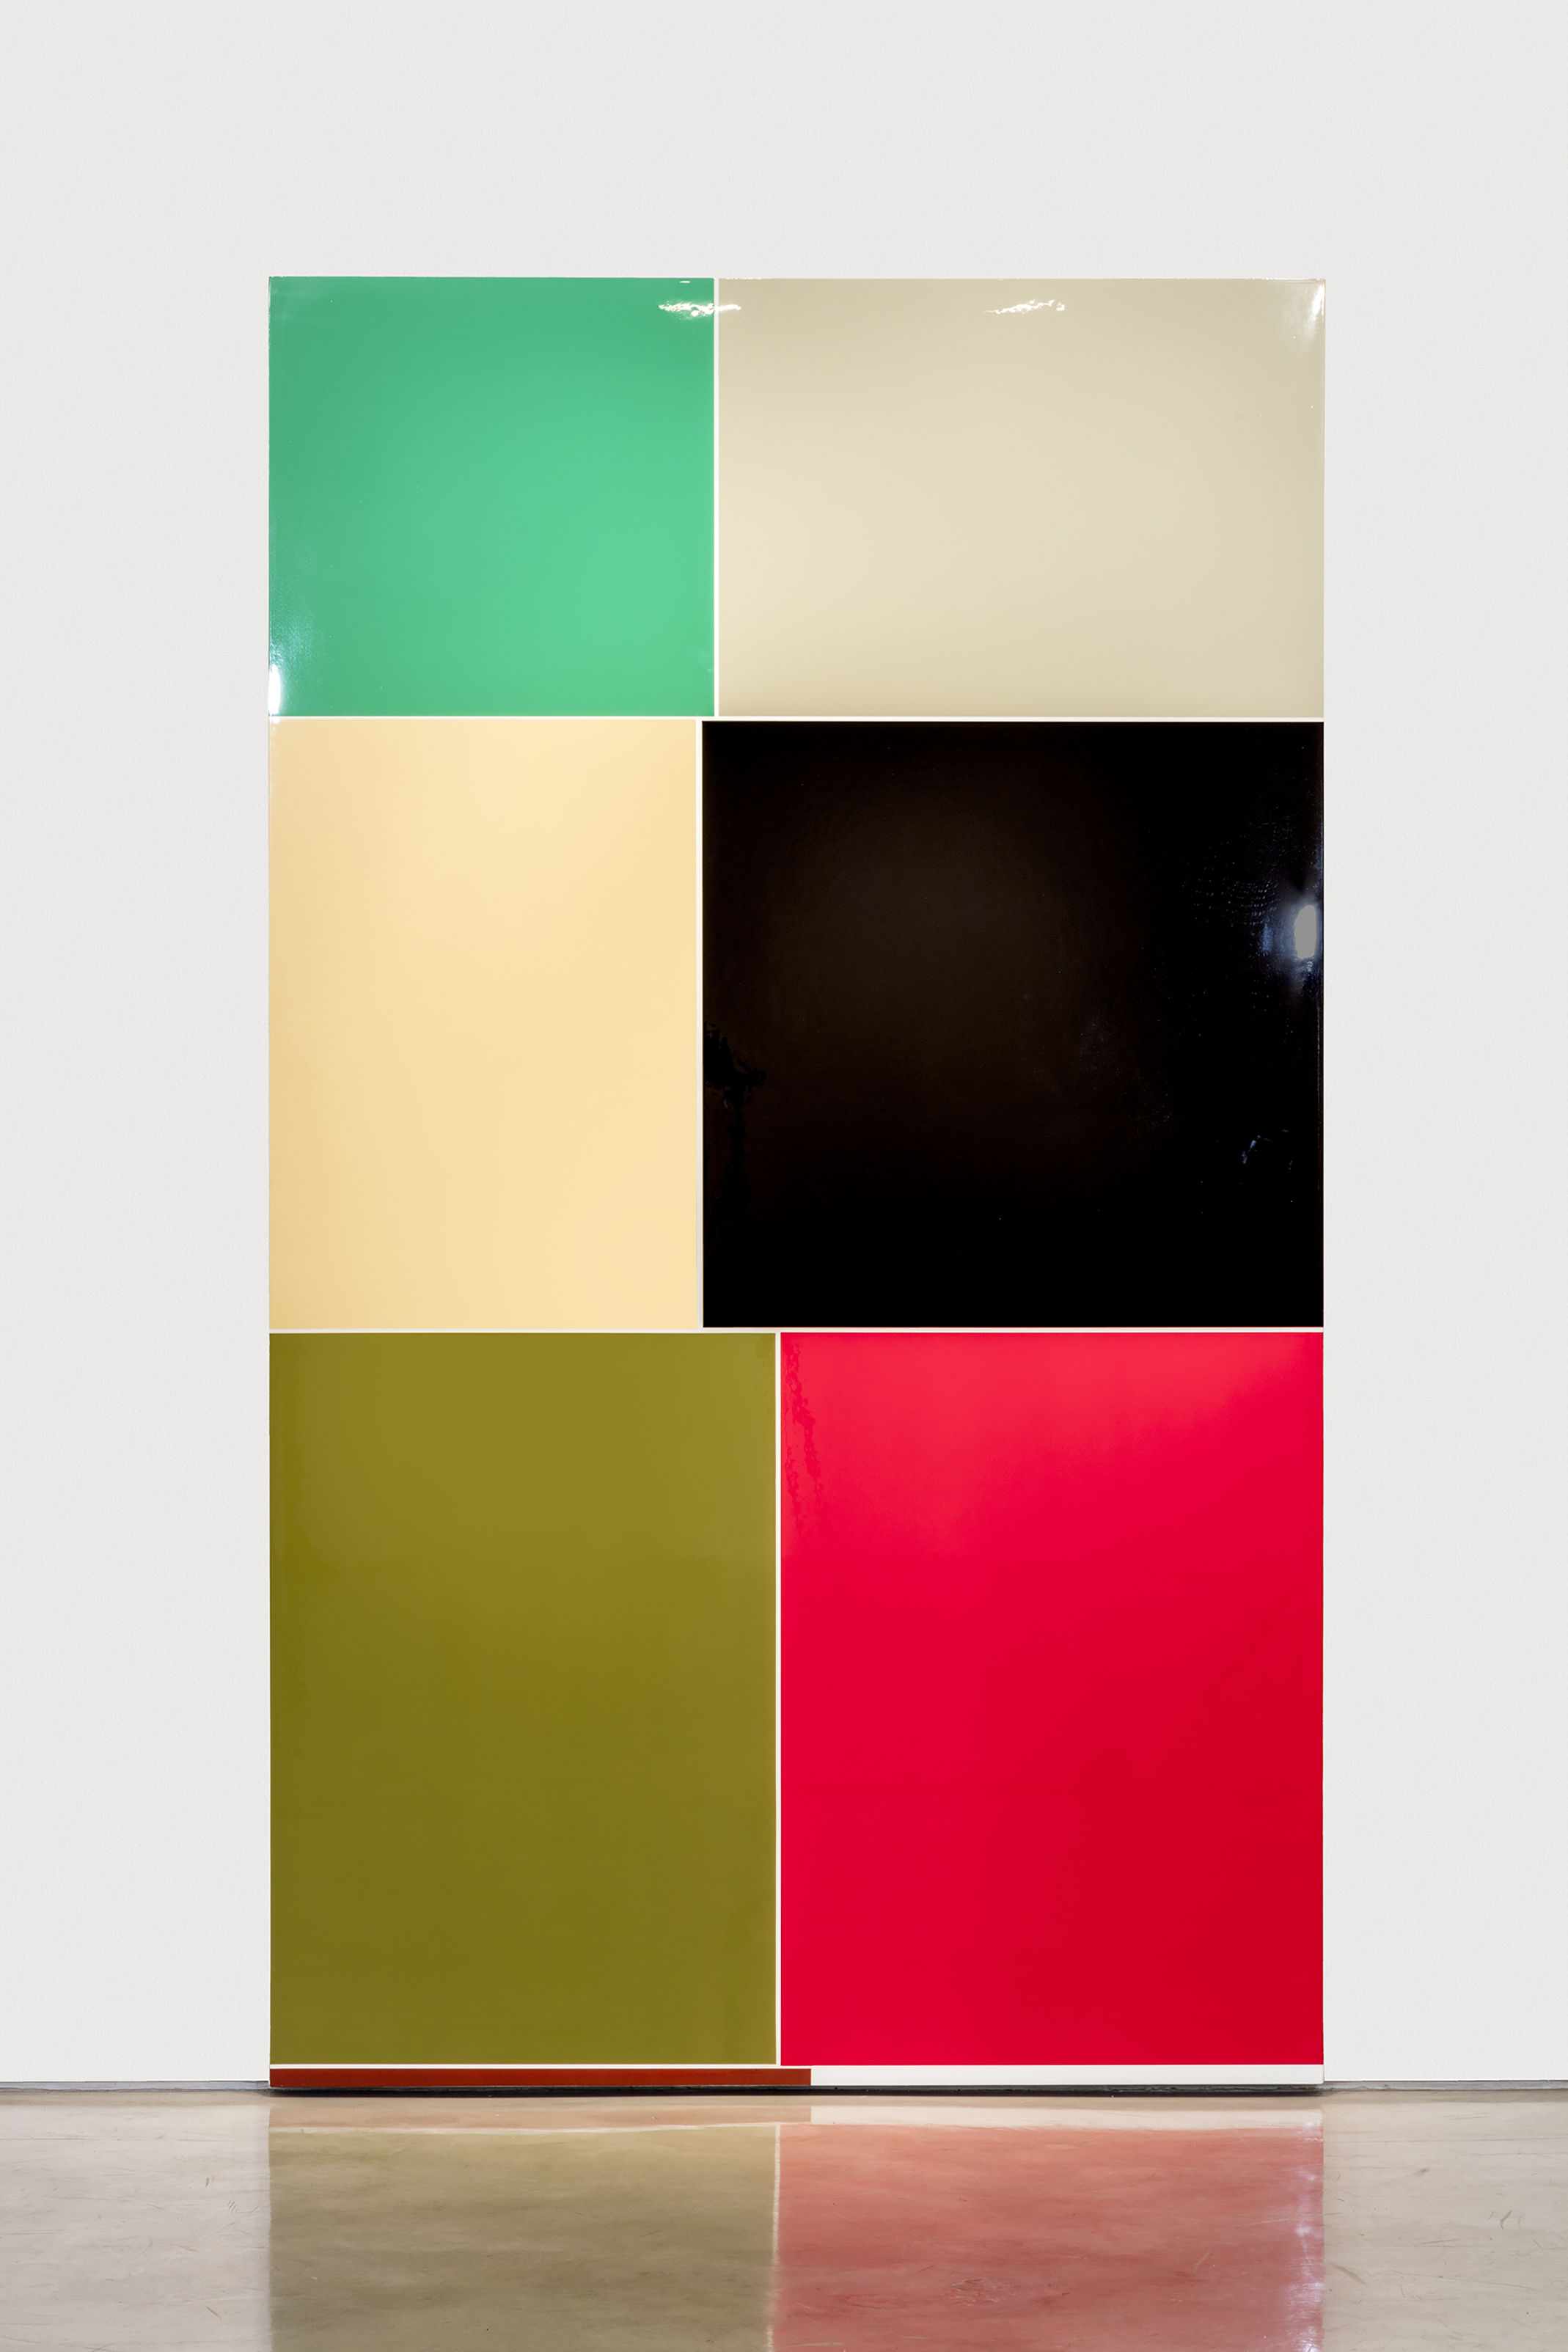 Finis origine pendet, 2016Urethane on gesso on cotton canvas96 x 56 inches -